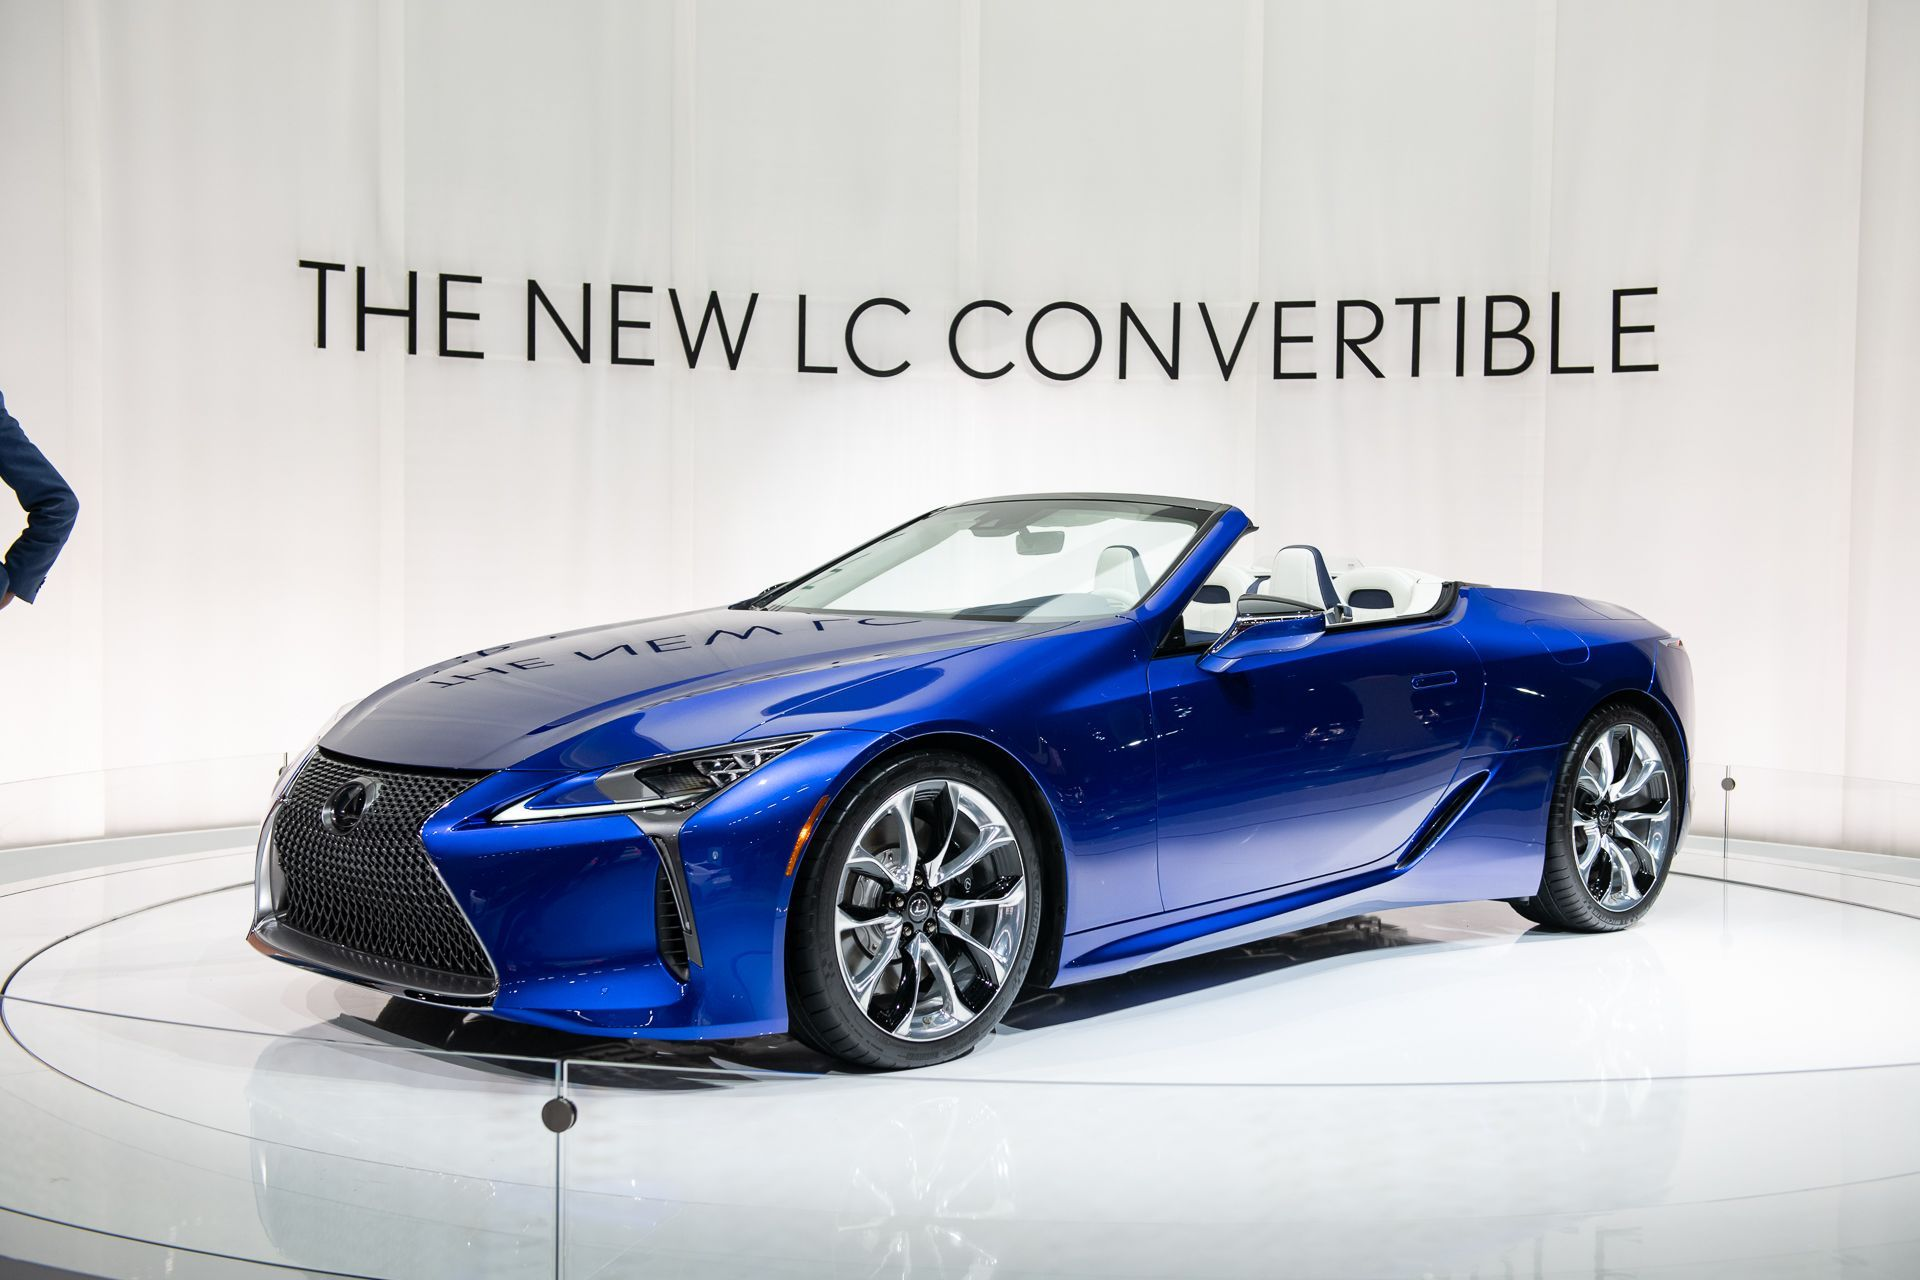 2021 Lexus Lc 500 Convertible Worth New Evaluation 2021